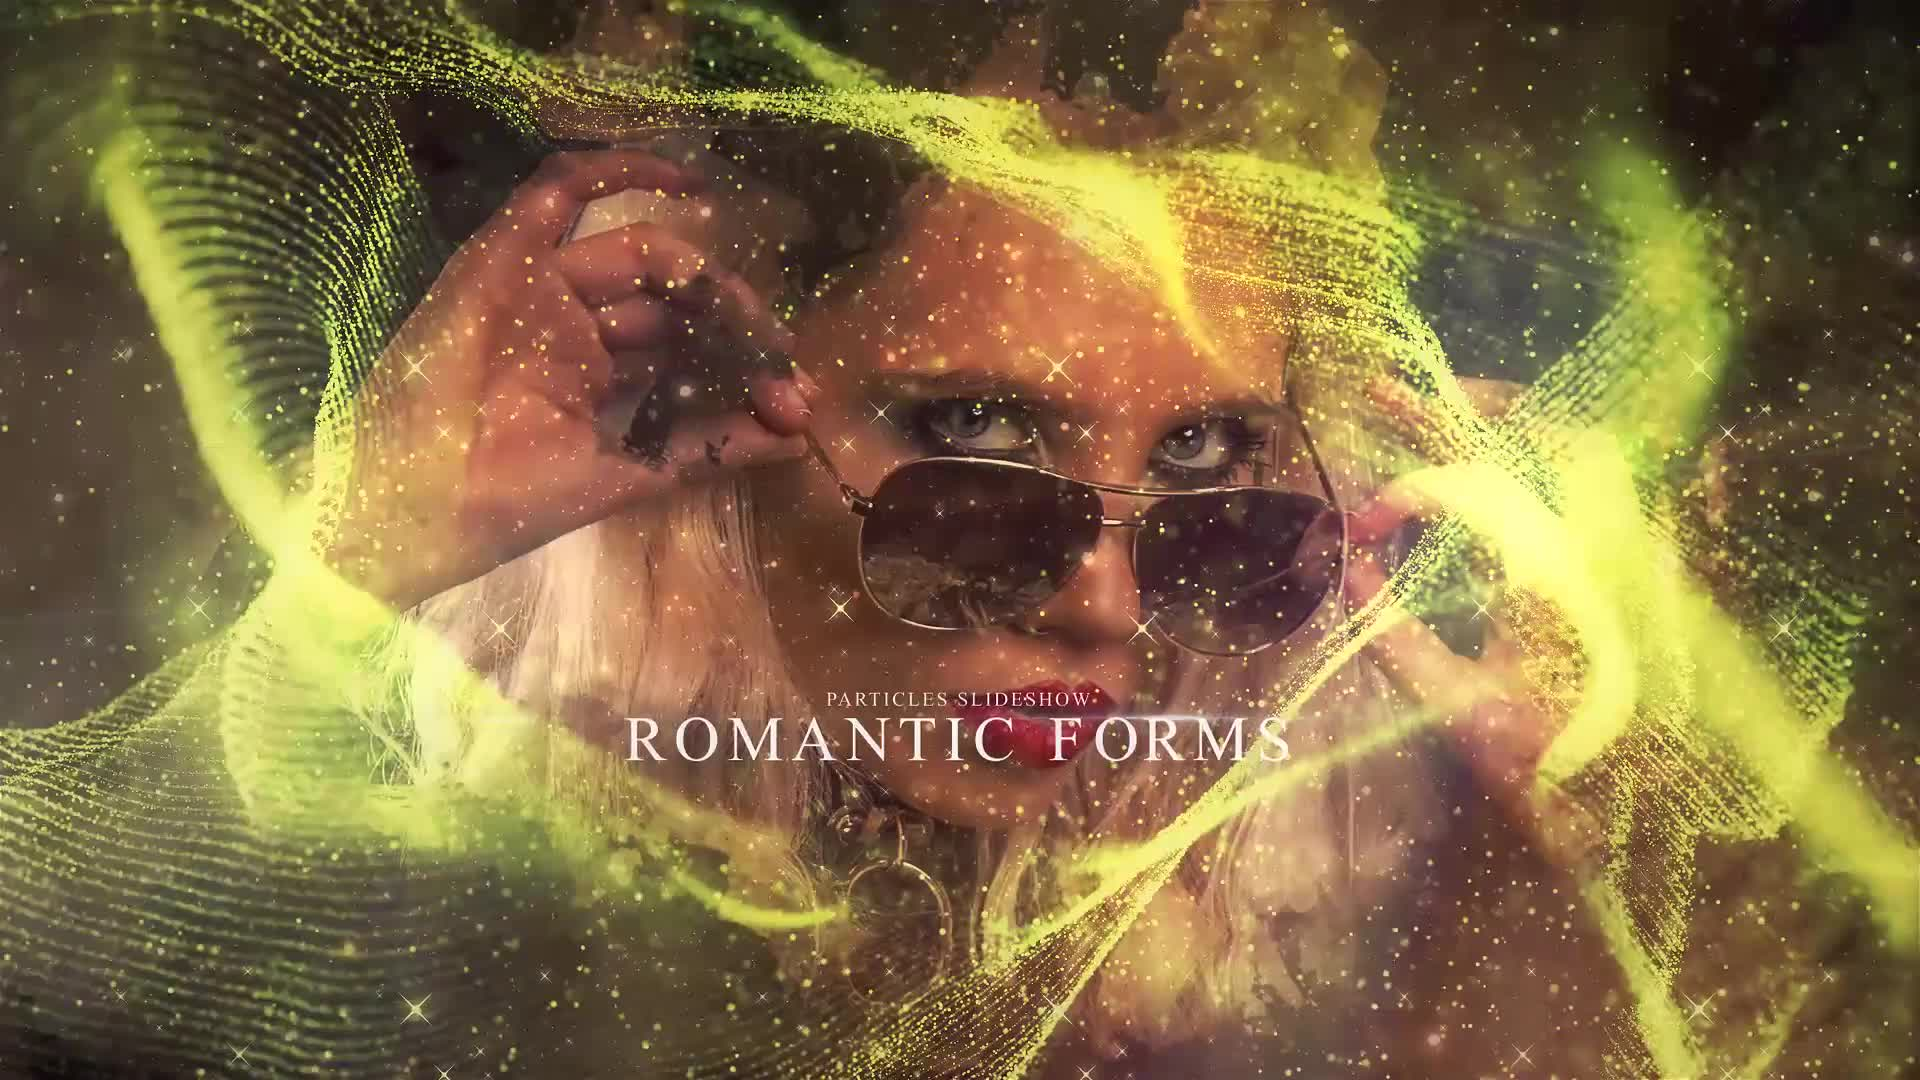 Romantic Forms Particles Slideshow Videohive 31368899 Premiere Pro Image 1